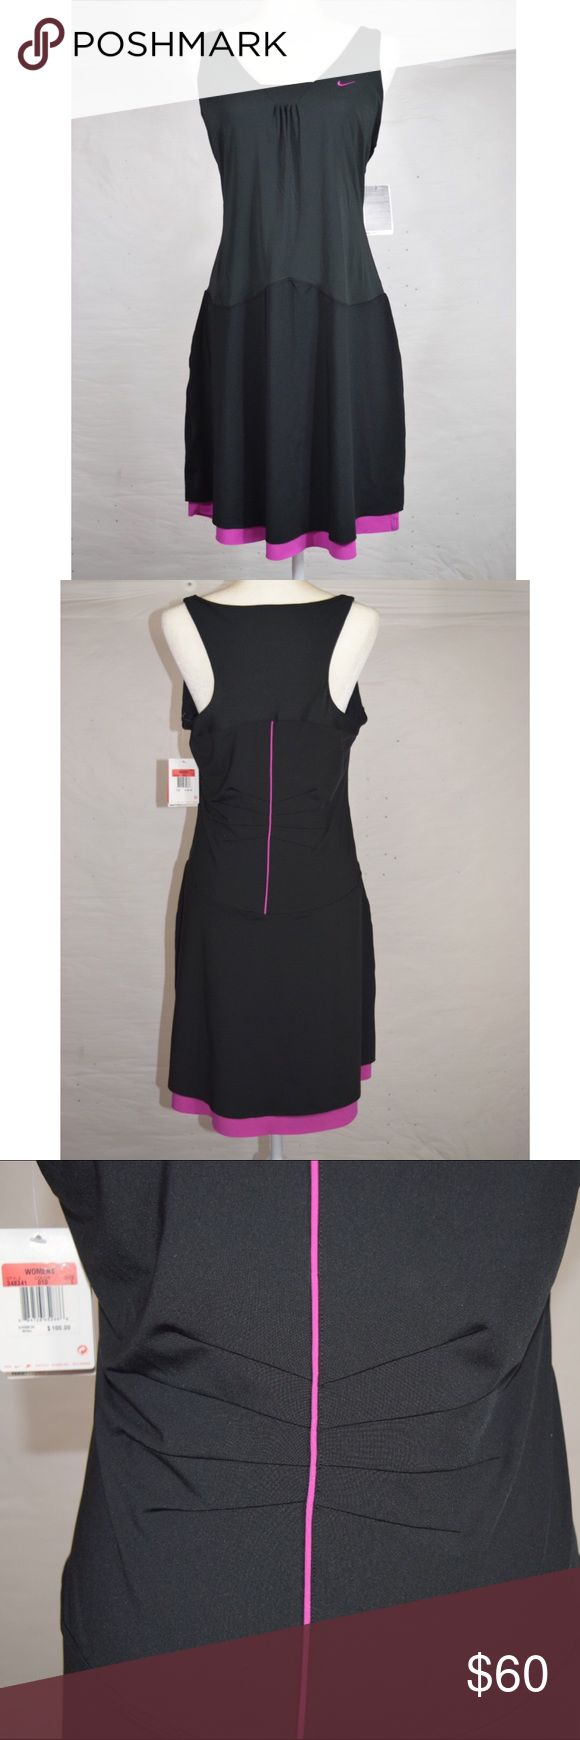 Nike Dri Fit Tennis Dress Nike tennis dress🔹Dri-Fit material🔹Sphere React Cool🔹Serena Williams🔹Built in bra🔹Body is 86% polyester and 14% spandex🔹Black and pink🔹Smoke and pet free home Nike Dresses